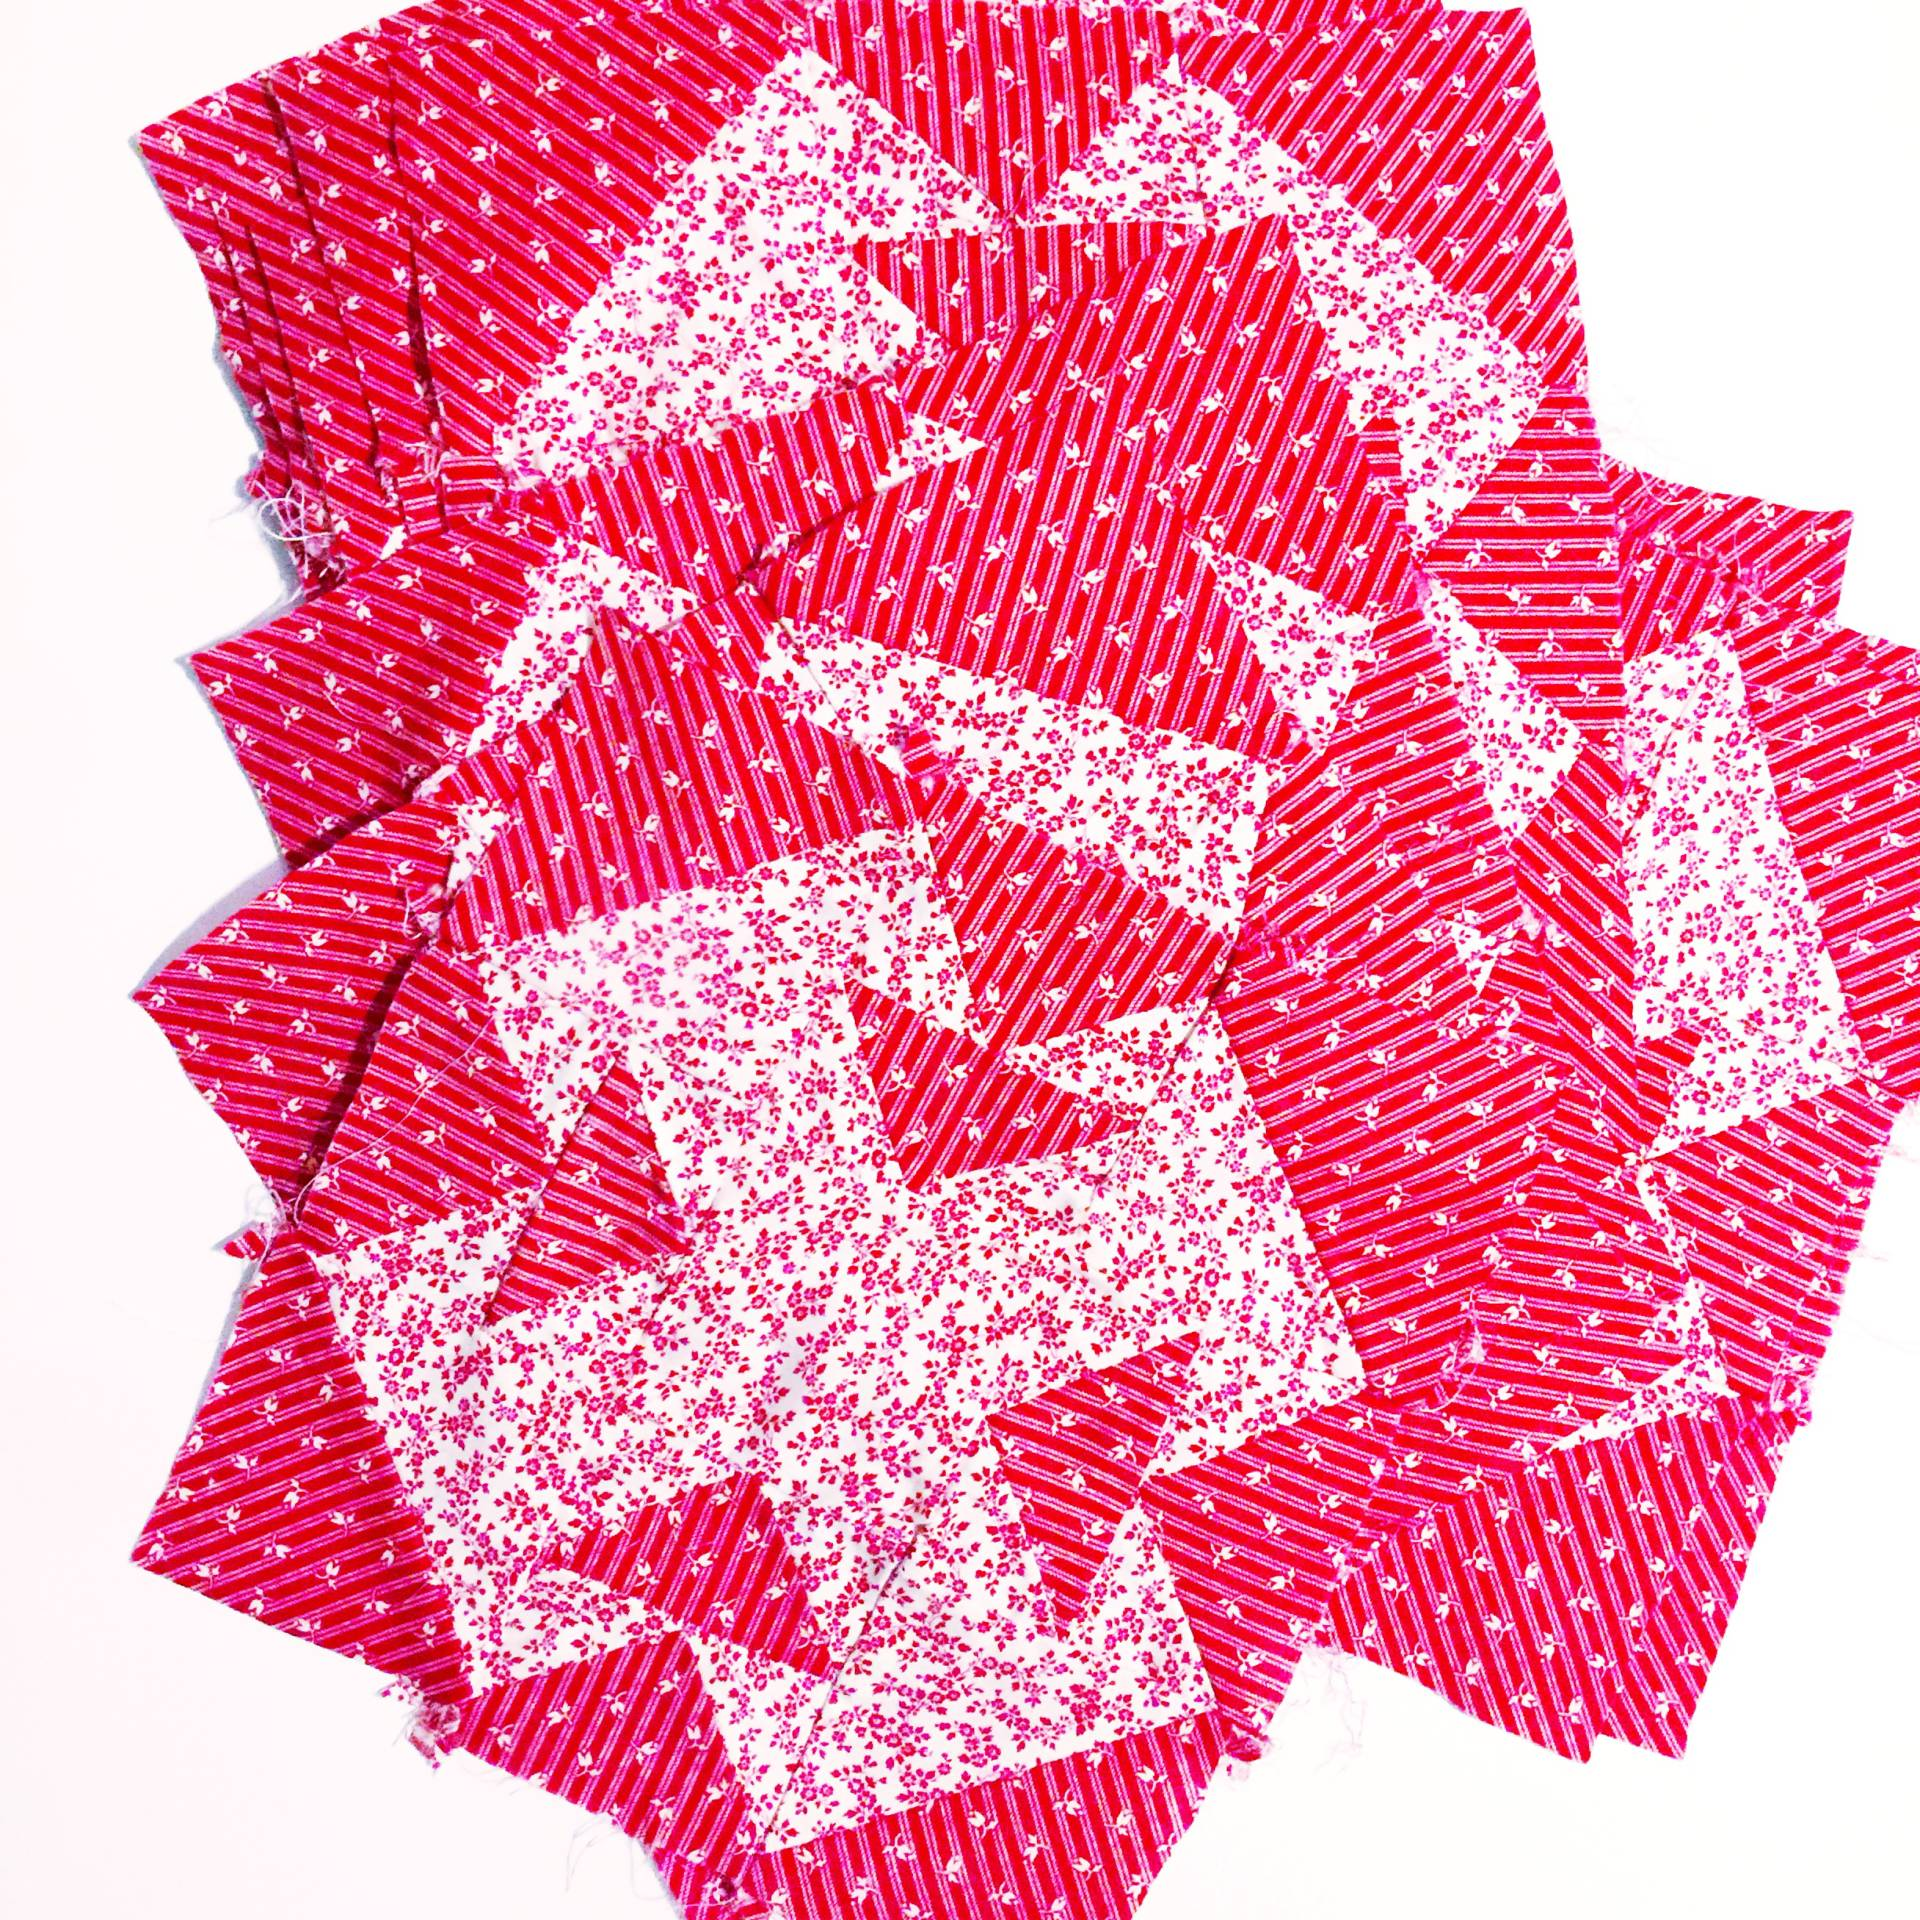 double T quilt block in red and white